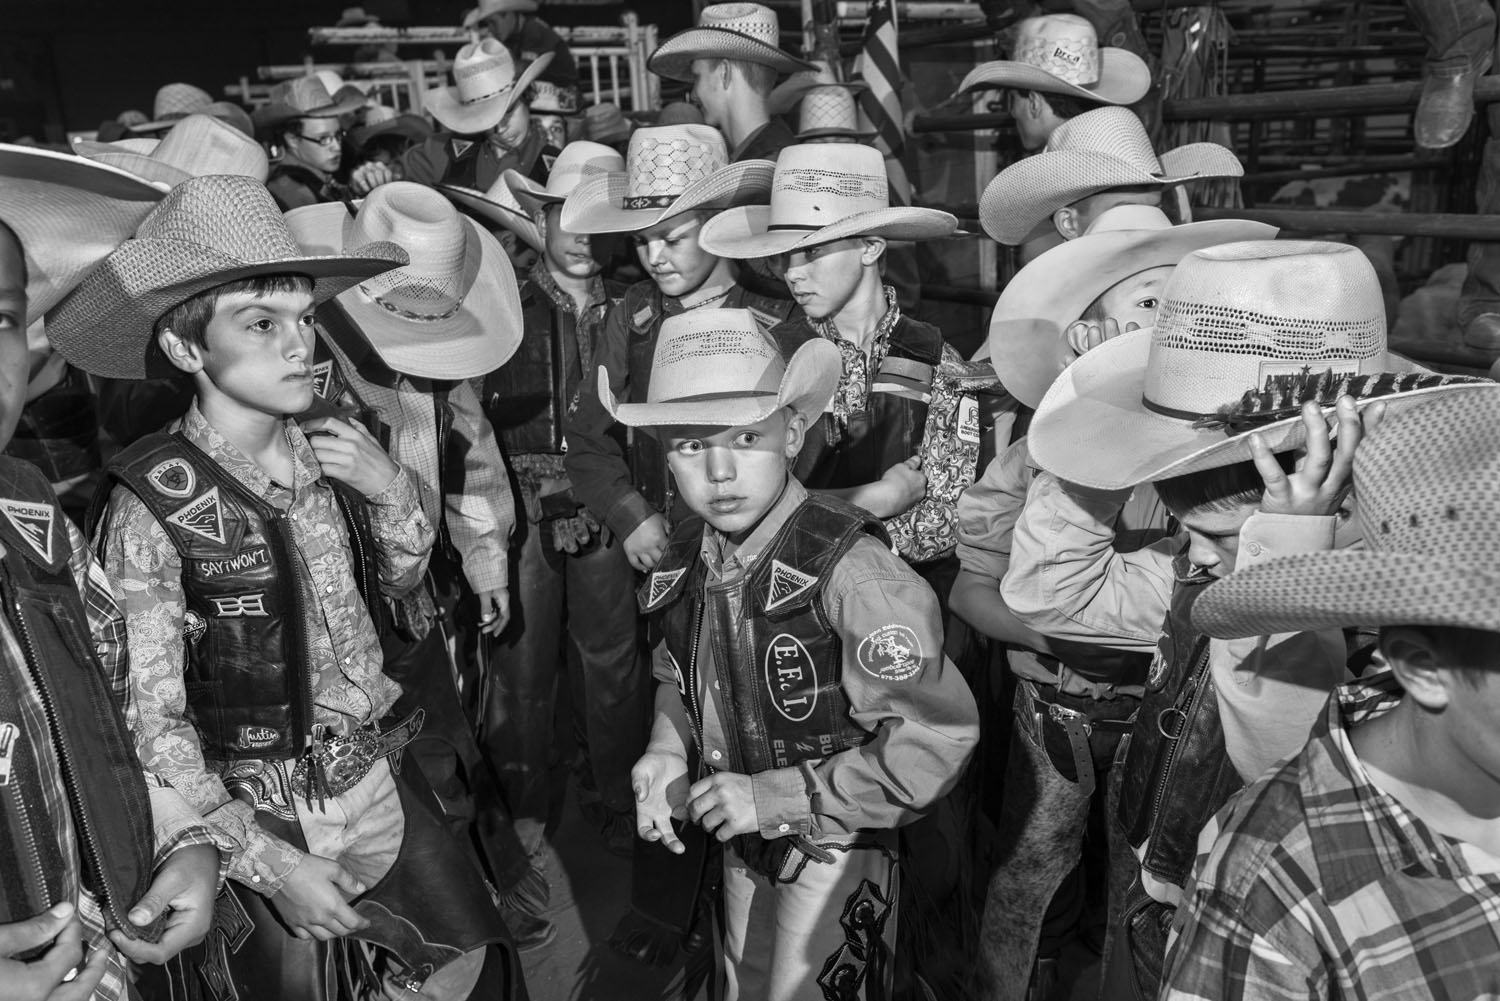 The New Yorker Photo Booth:  Eight Seconds of GloryCalf riders wait in the arena alley on the last day of the Youth Bull Riders World Finals, in Abilene, Texas. Rodeo bull riders learn as children by riding sheep, calves, and steers. Many ride their first bull before their teens.